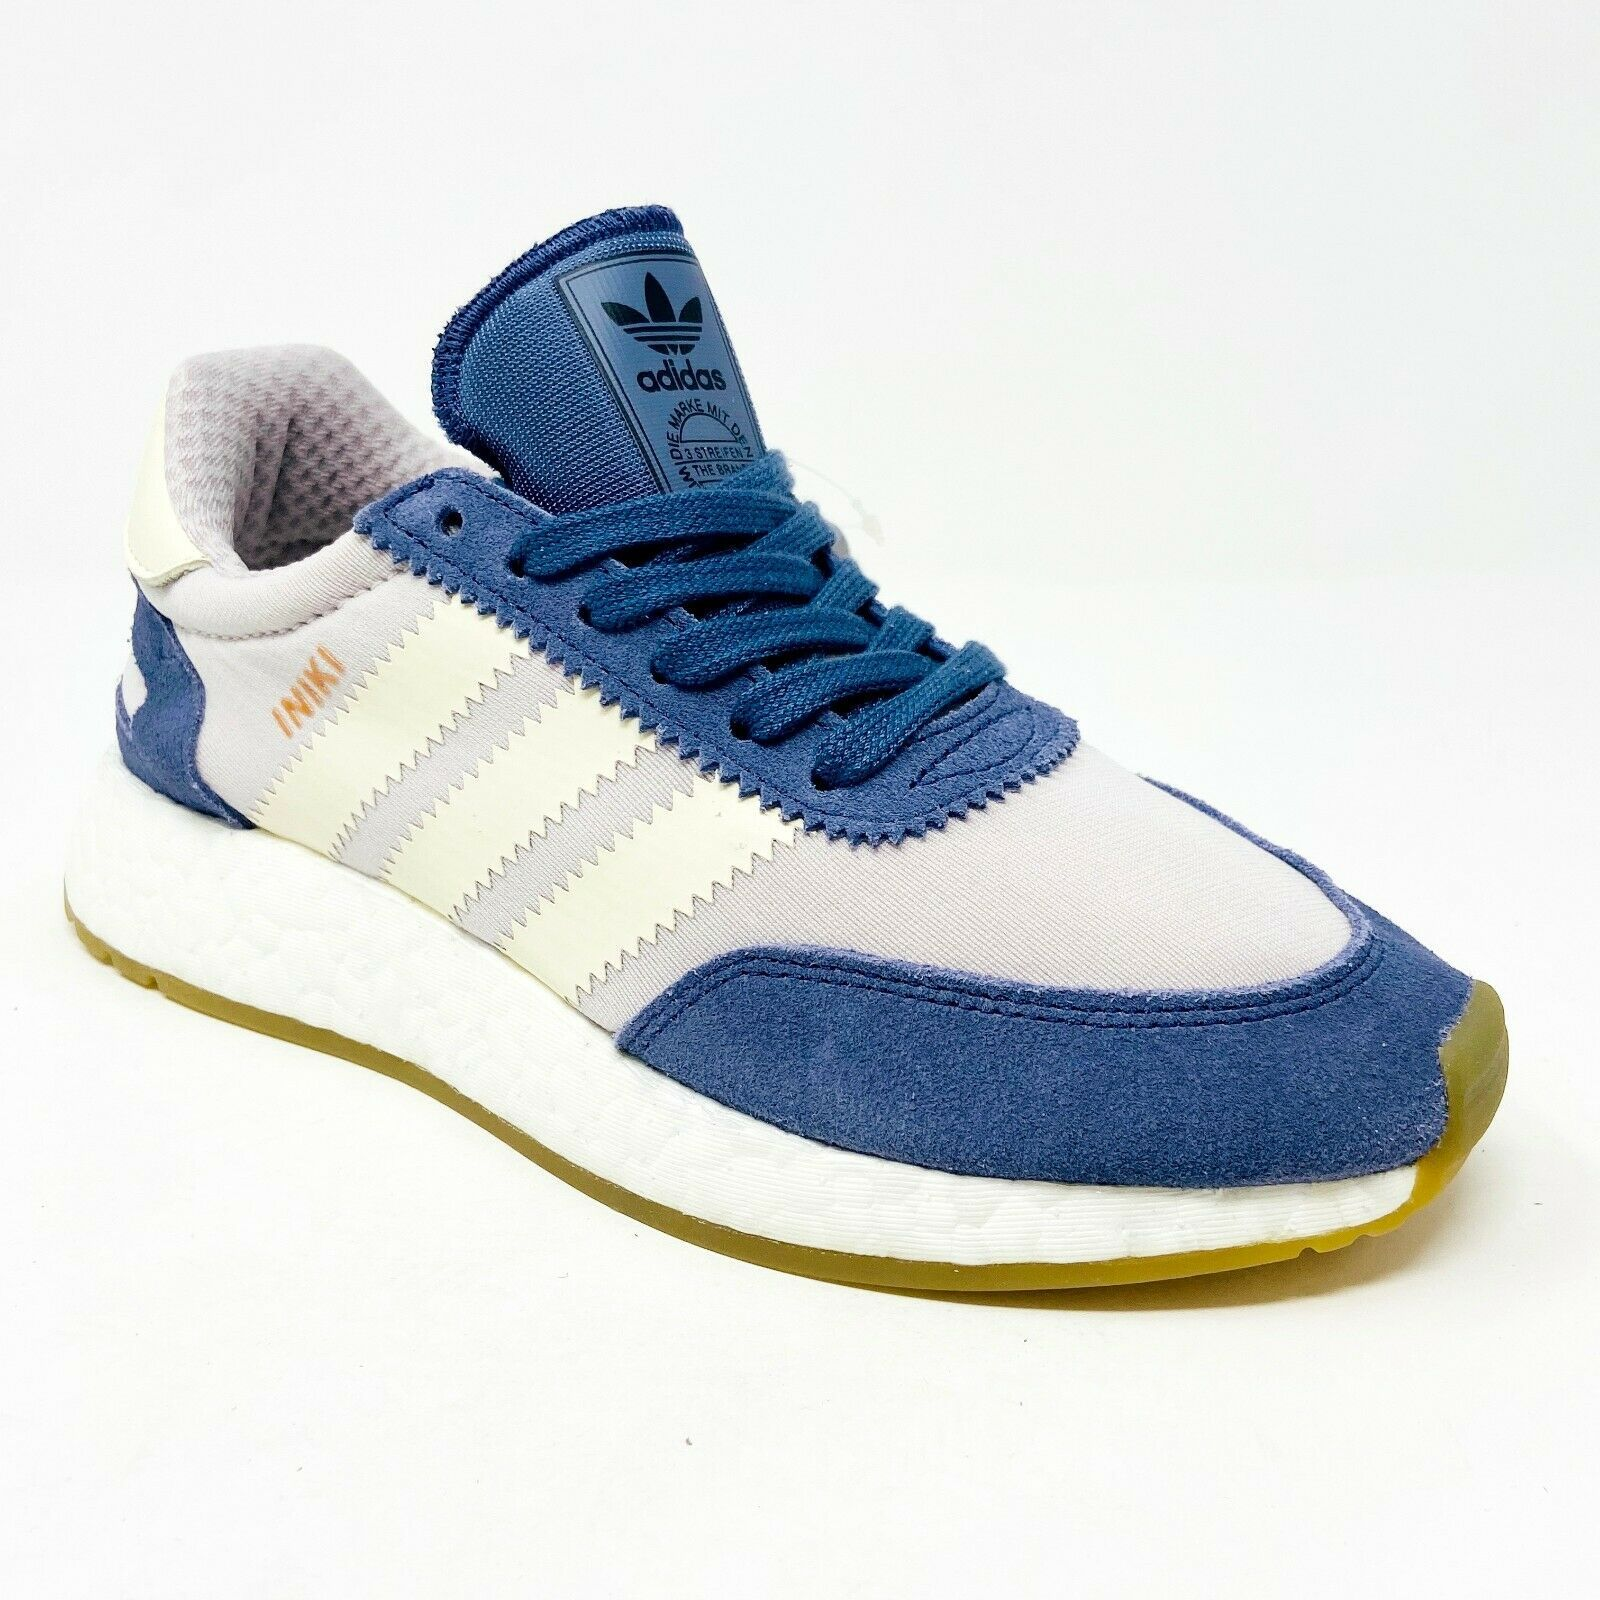 Primary image for Adidas Iniki Runner Super Purple Cream Whte Gum BA9995 Womens Trainers